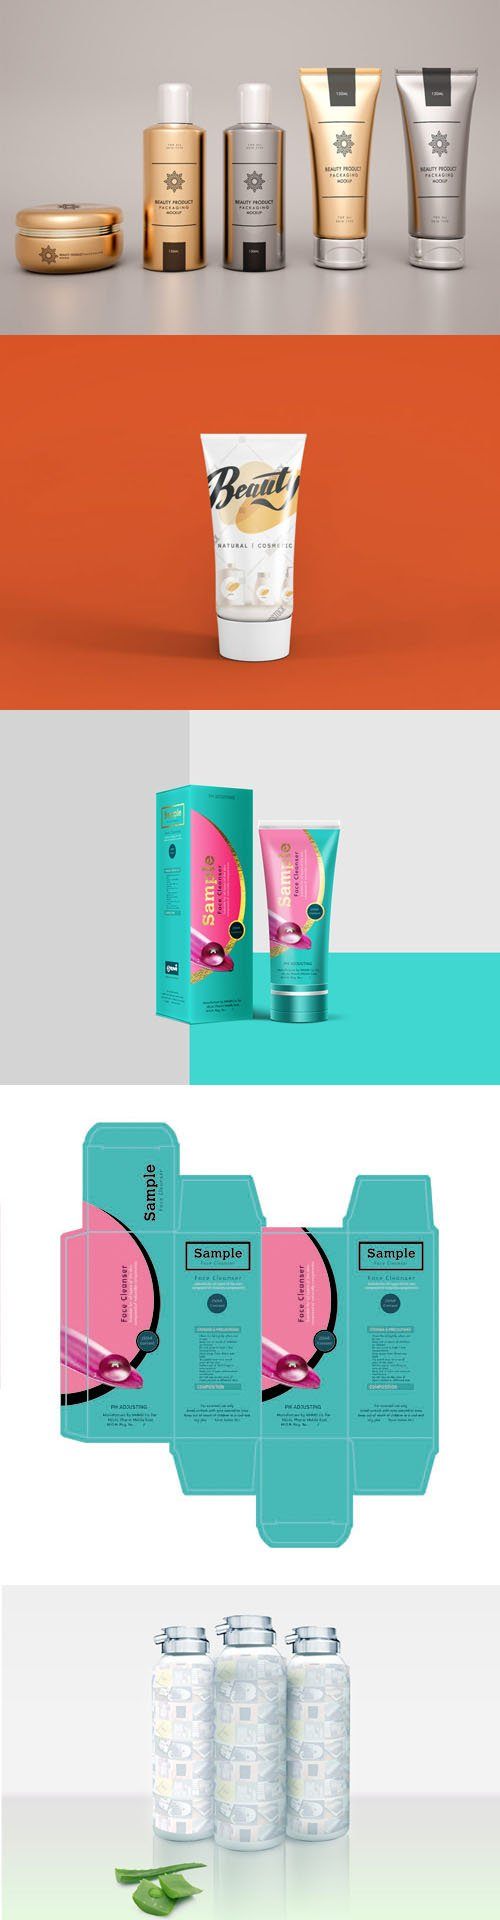 Cosmetic Product Design Packaging PSD Mockups